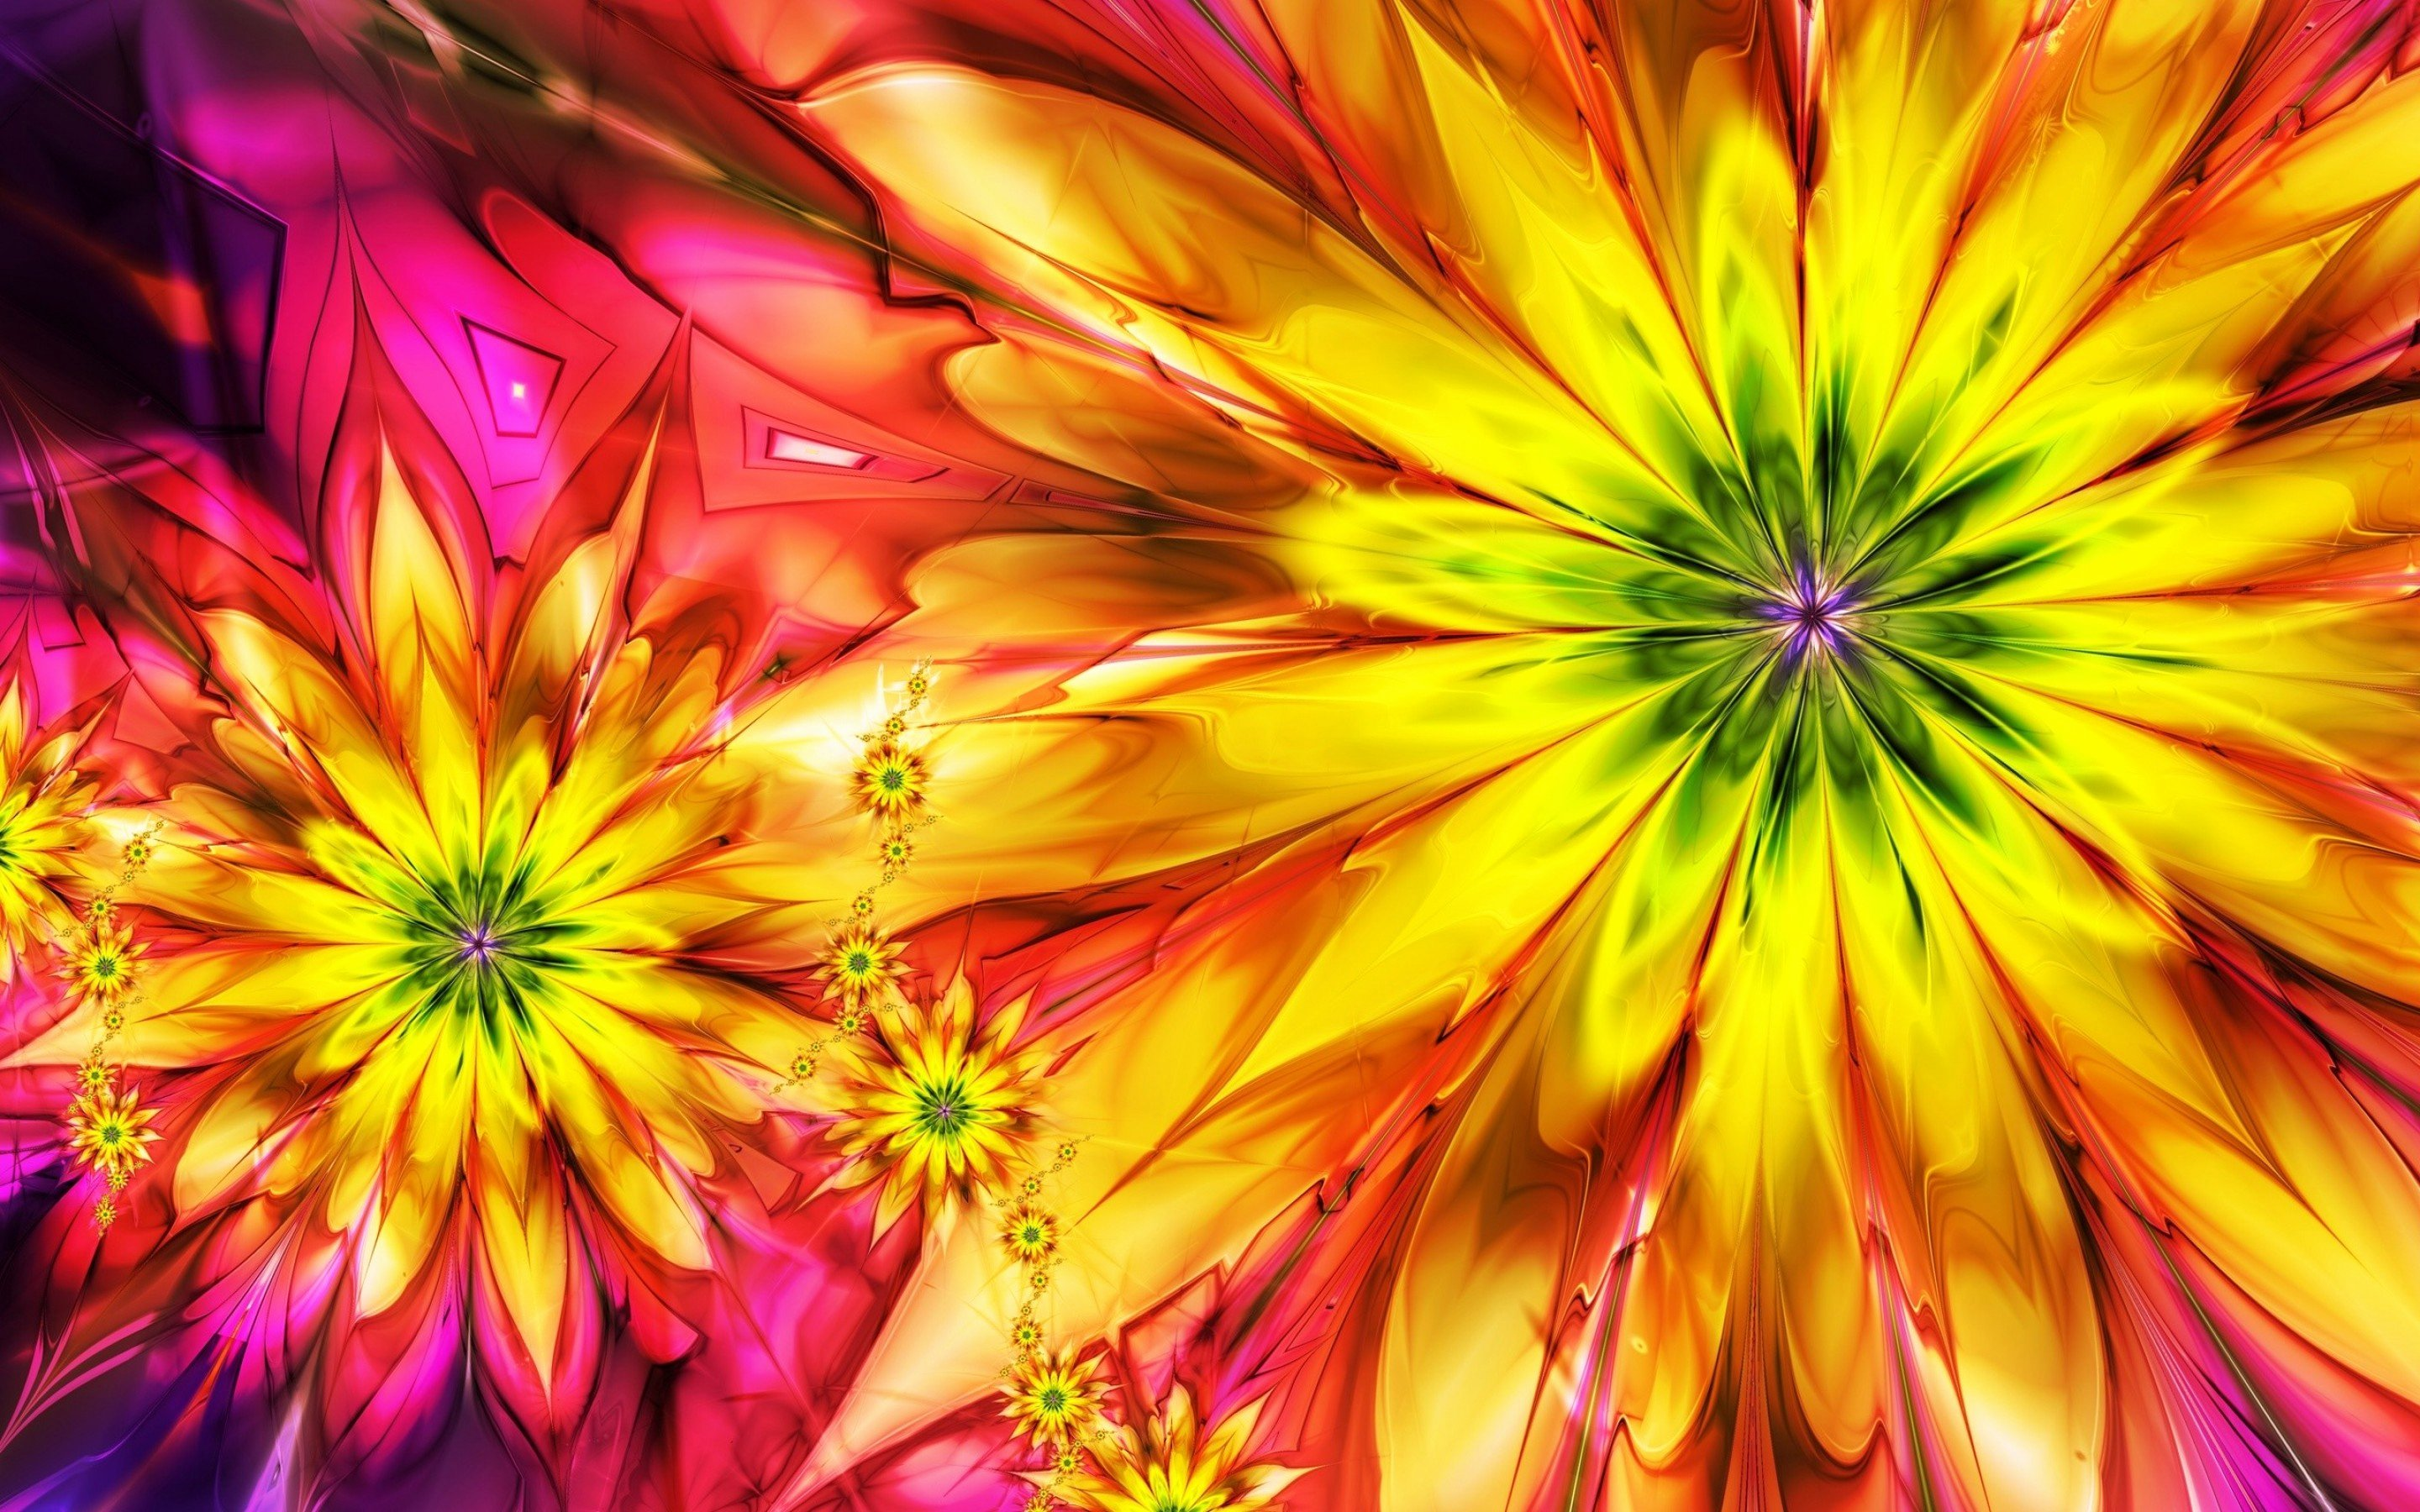 Abstract Pictures Of Flowers New Colorful Flowers Wallpapers Hd